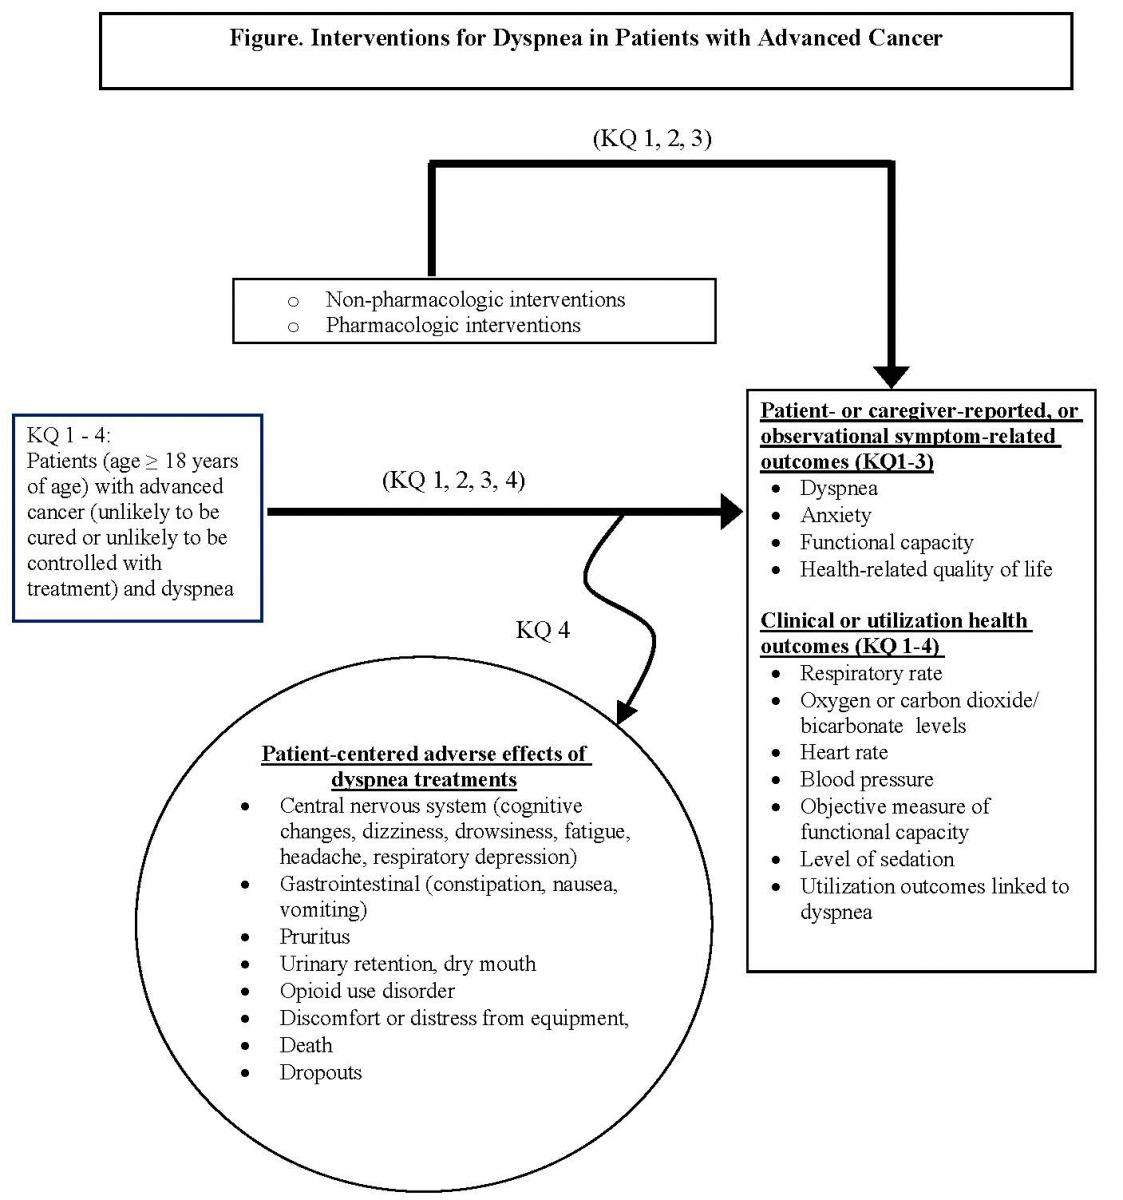 Interventions For Dyspnea In Patients With Advanced Cancer Effective Health Care Program